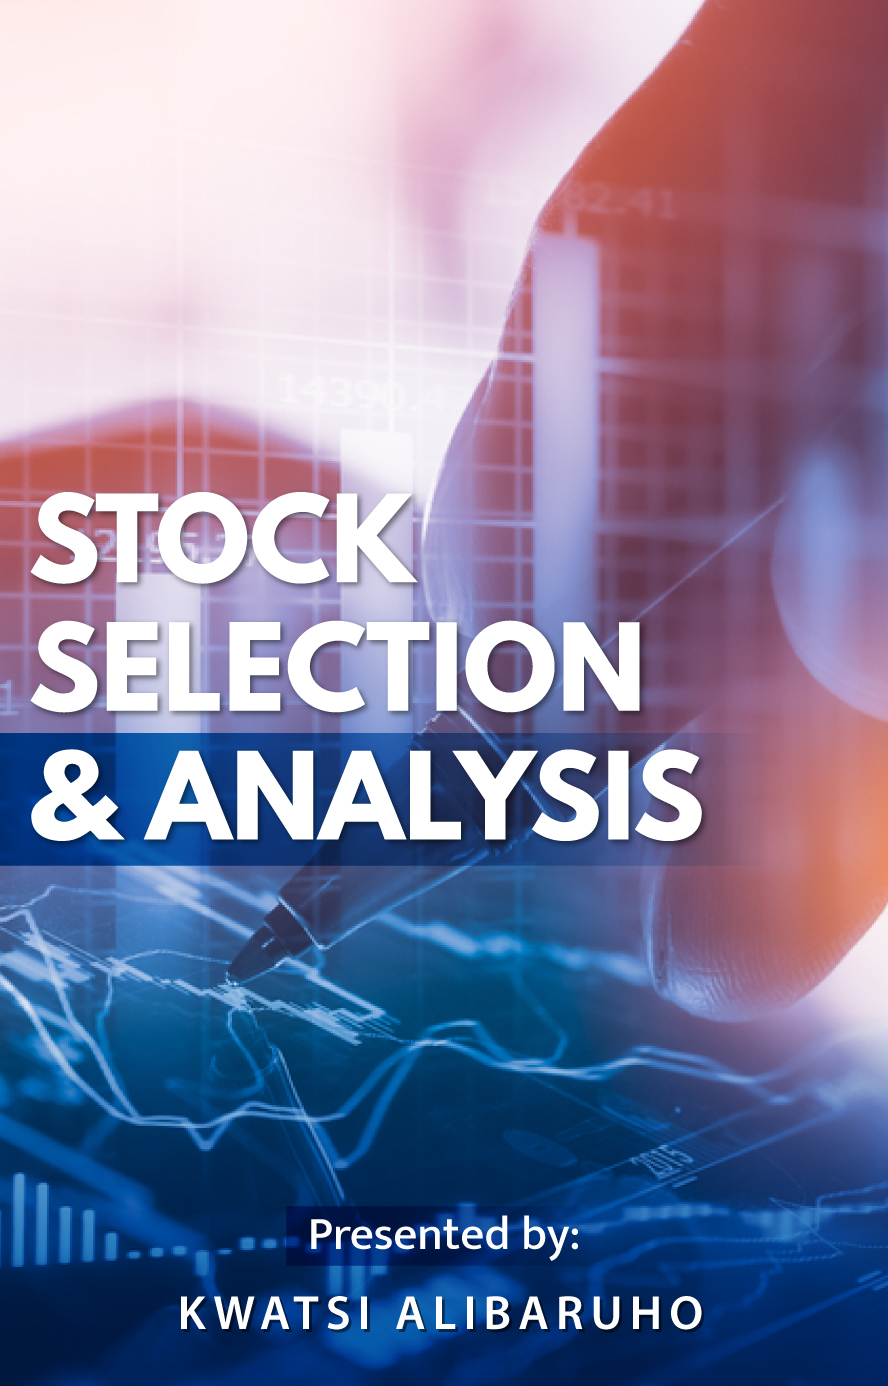 STOCK SELECTION